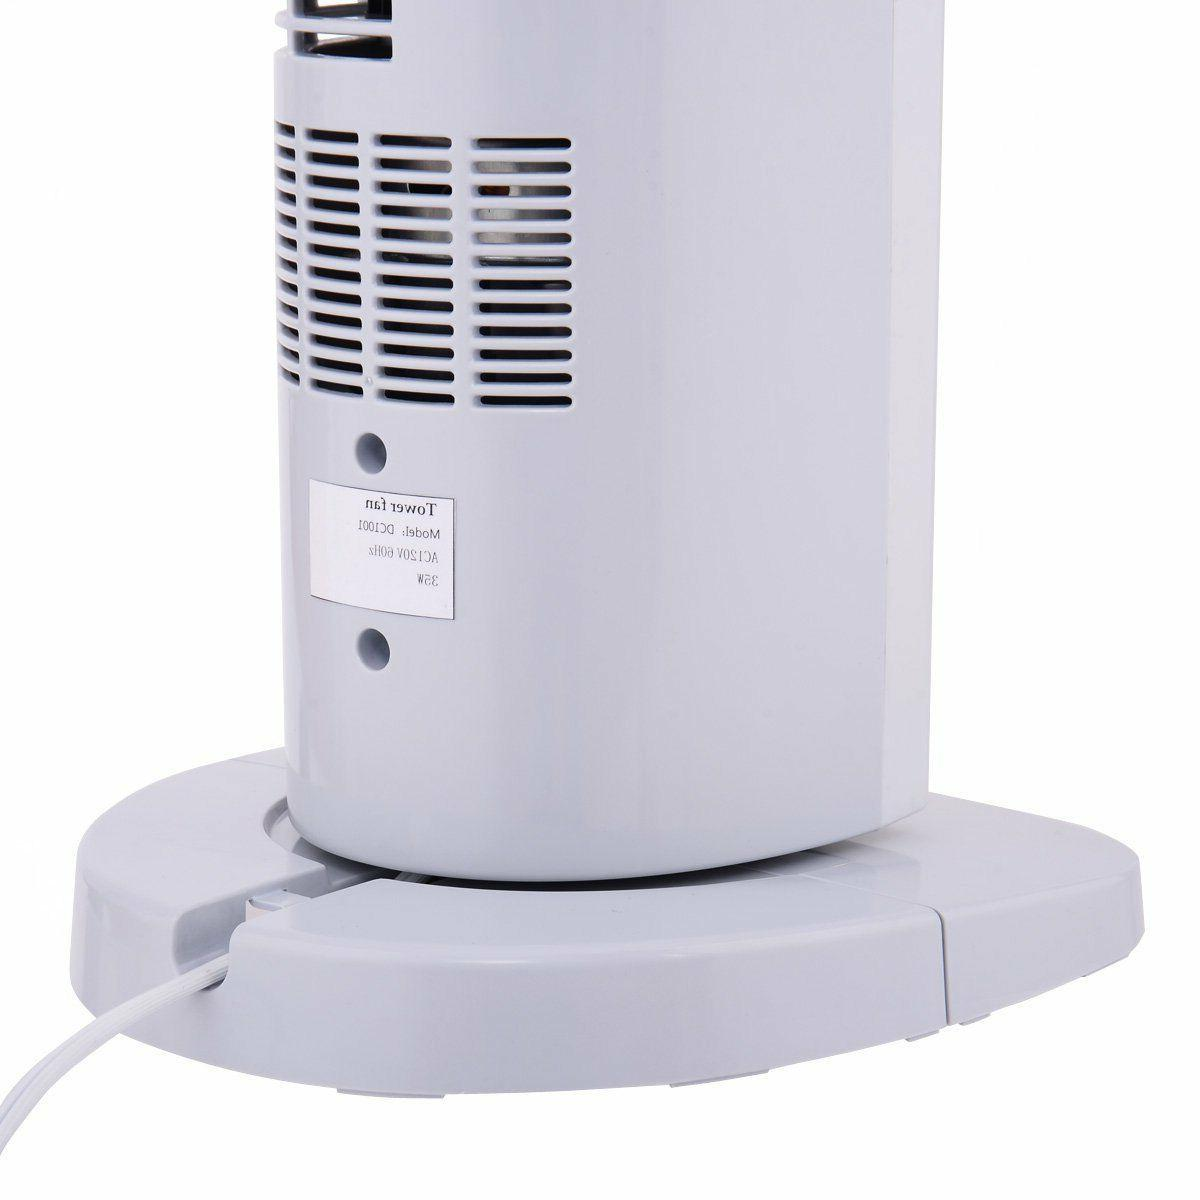 3-Speed Oscillating Tower Fan Cooling Air Conditioner Portable Floor